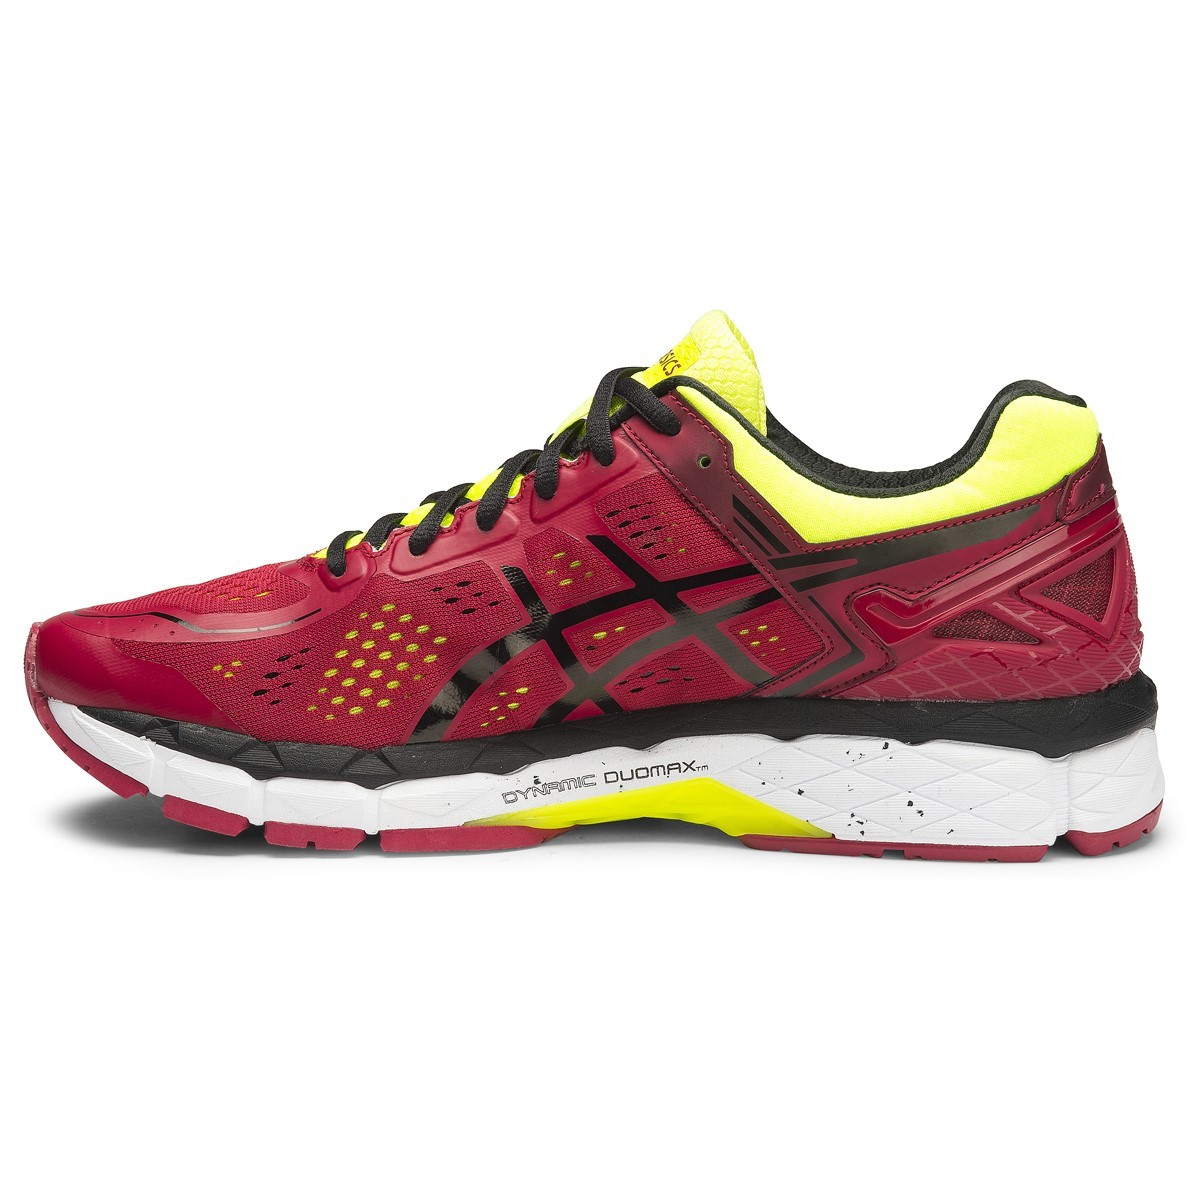 asics gel kayano 22 mens running shoes red pepper black flash yellow online sportitude. Black Bedroom Furniture Sets. Home Design Ideas